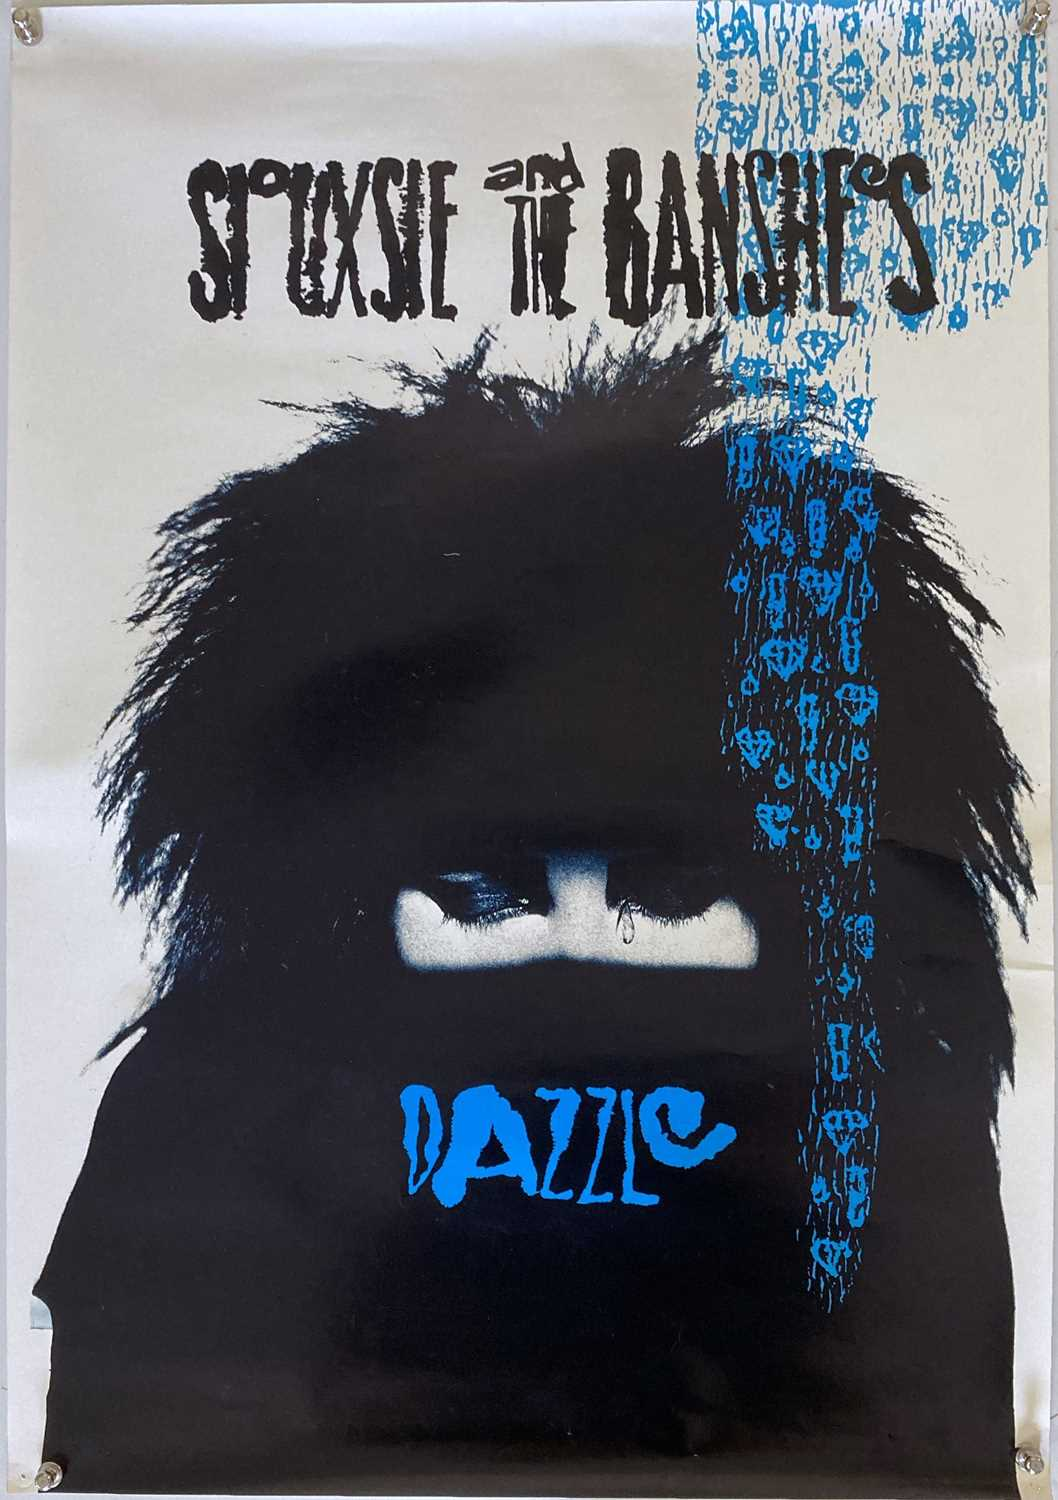 SIOUXSIE AND THE BANSHEES / THE CREATURES POSTERS.